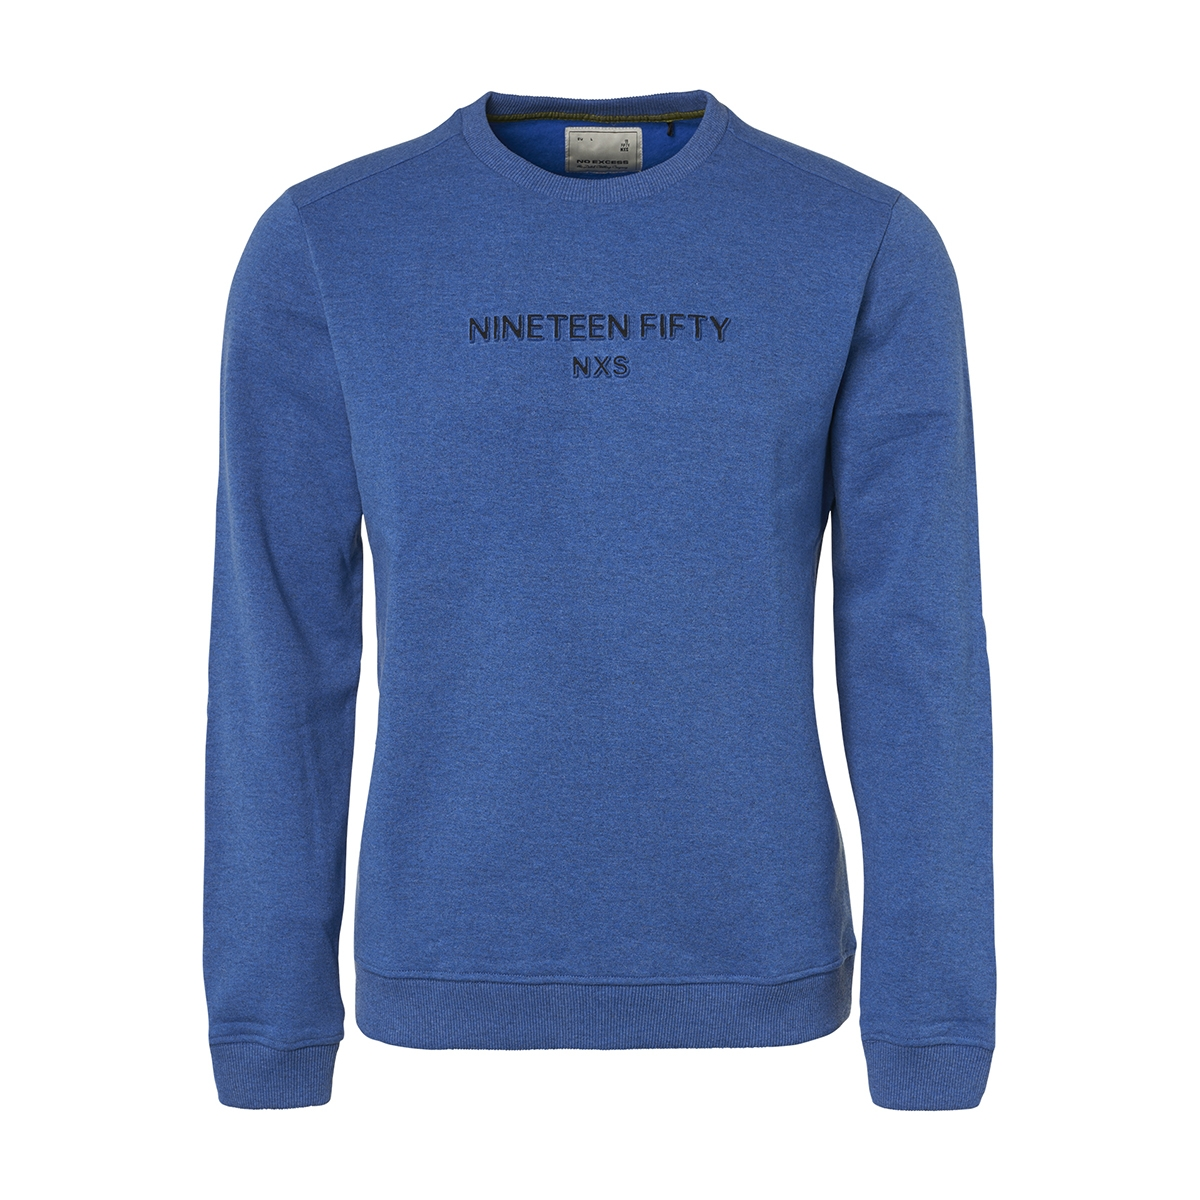 crewneck sweater with logo 94131152 no-excess sweater 135 royal